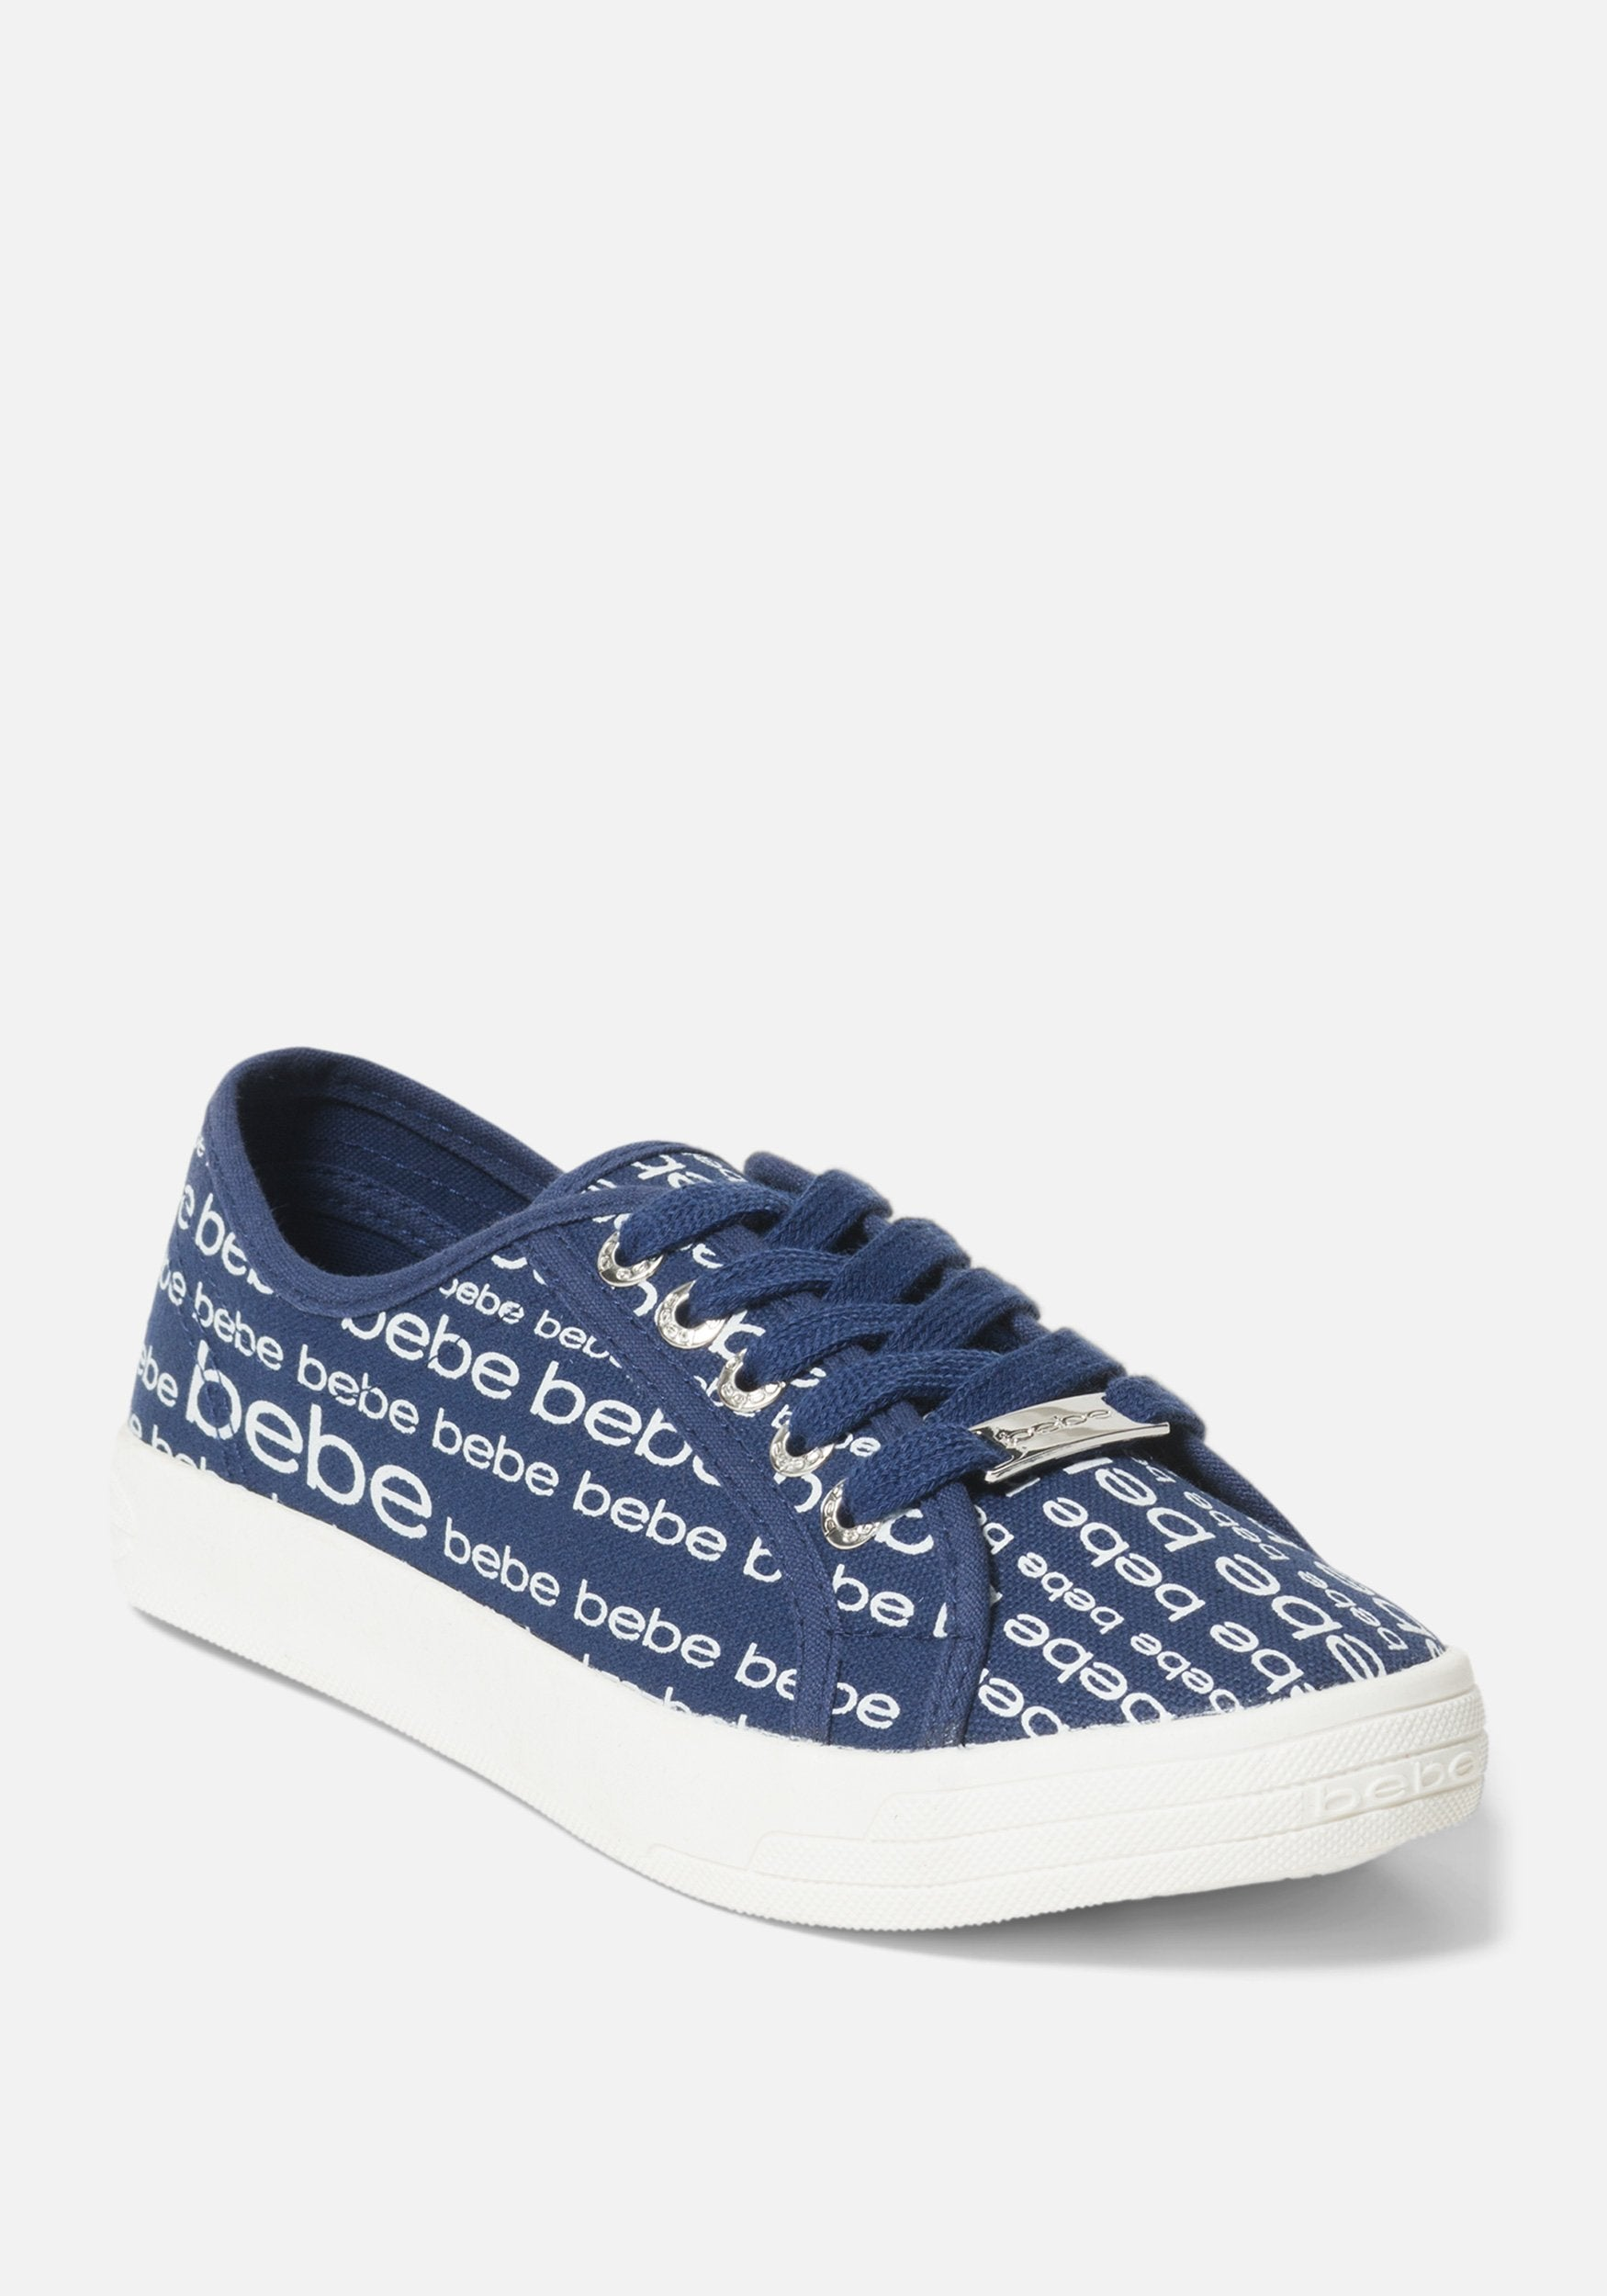 Women's Daylin Bebe Logo Sneakers, Size 6 in Navy Blue Synthetic